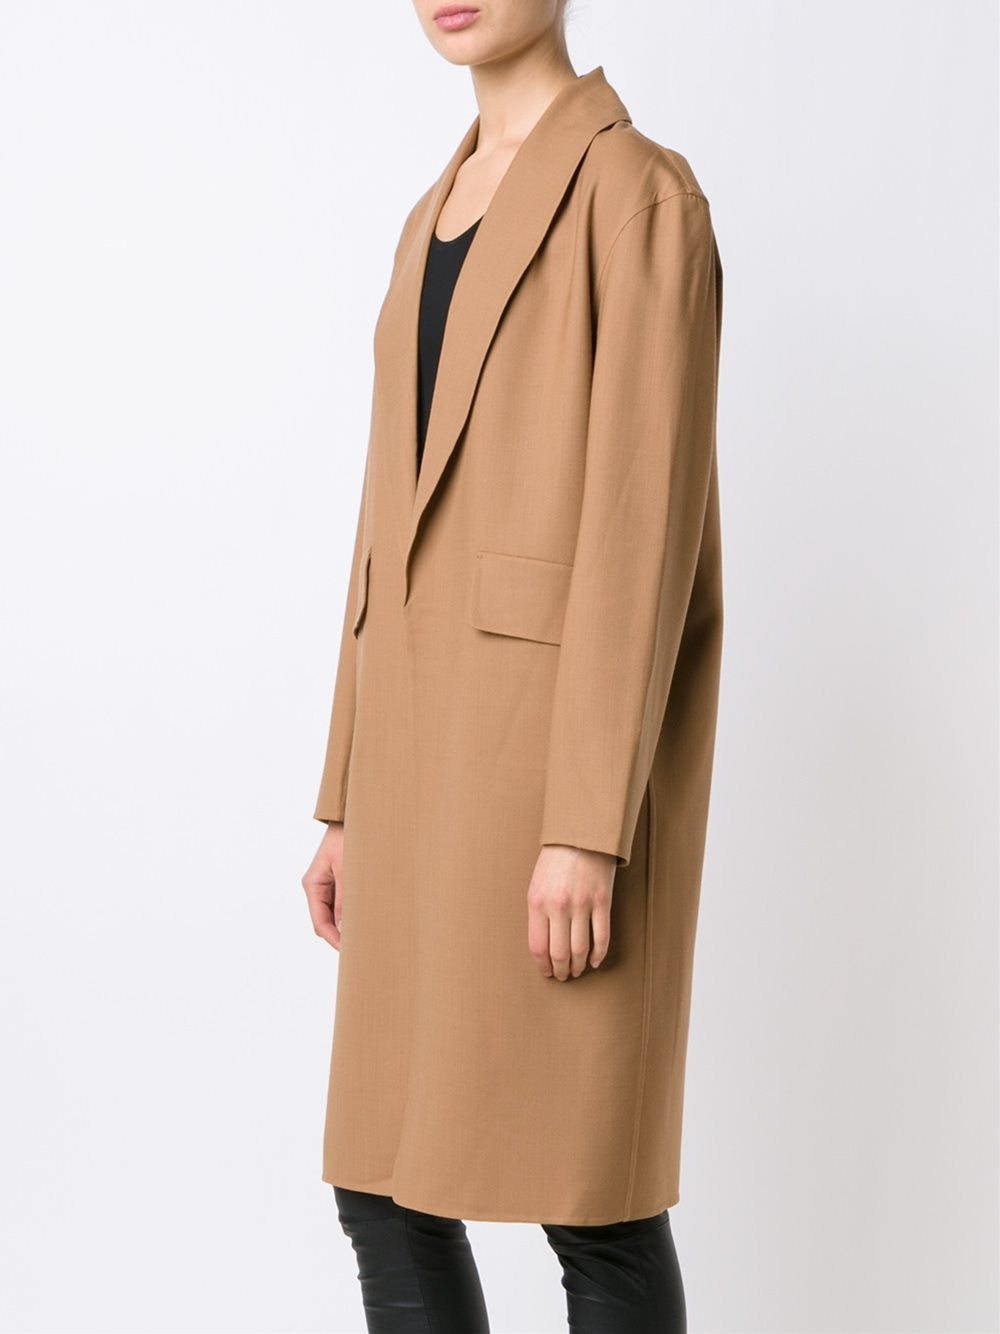 Wool Coat | 101576P16 FB2991P16